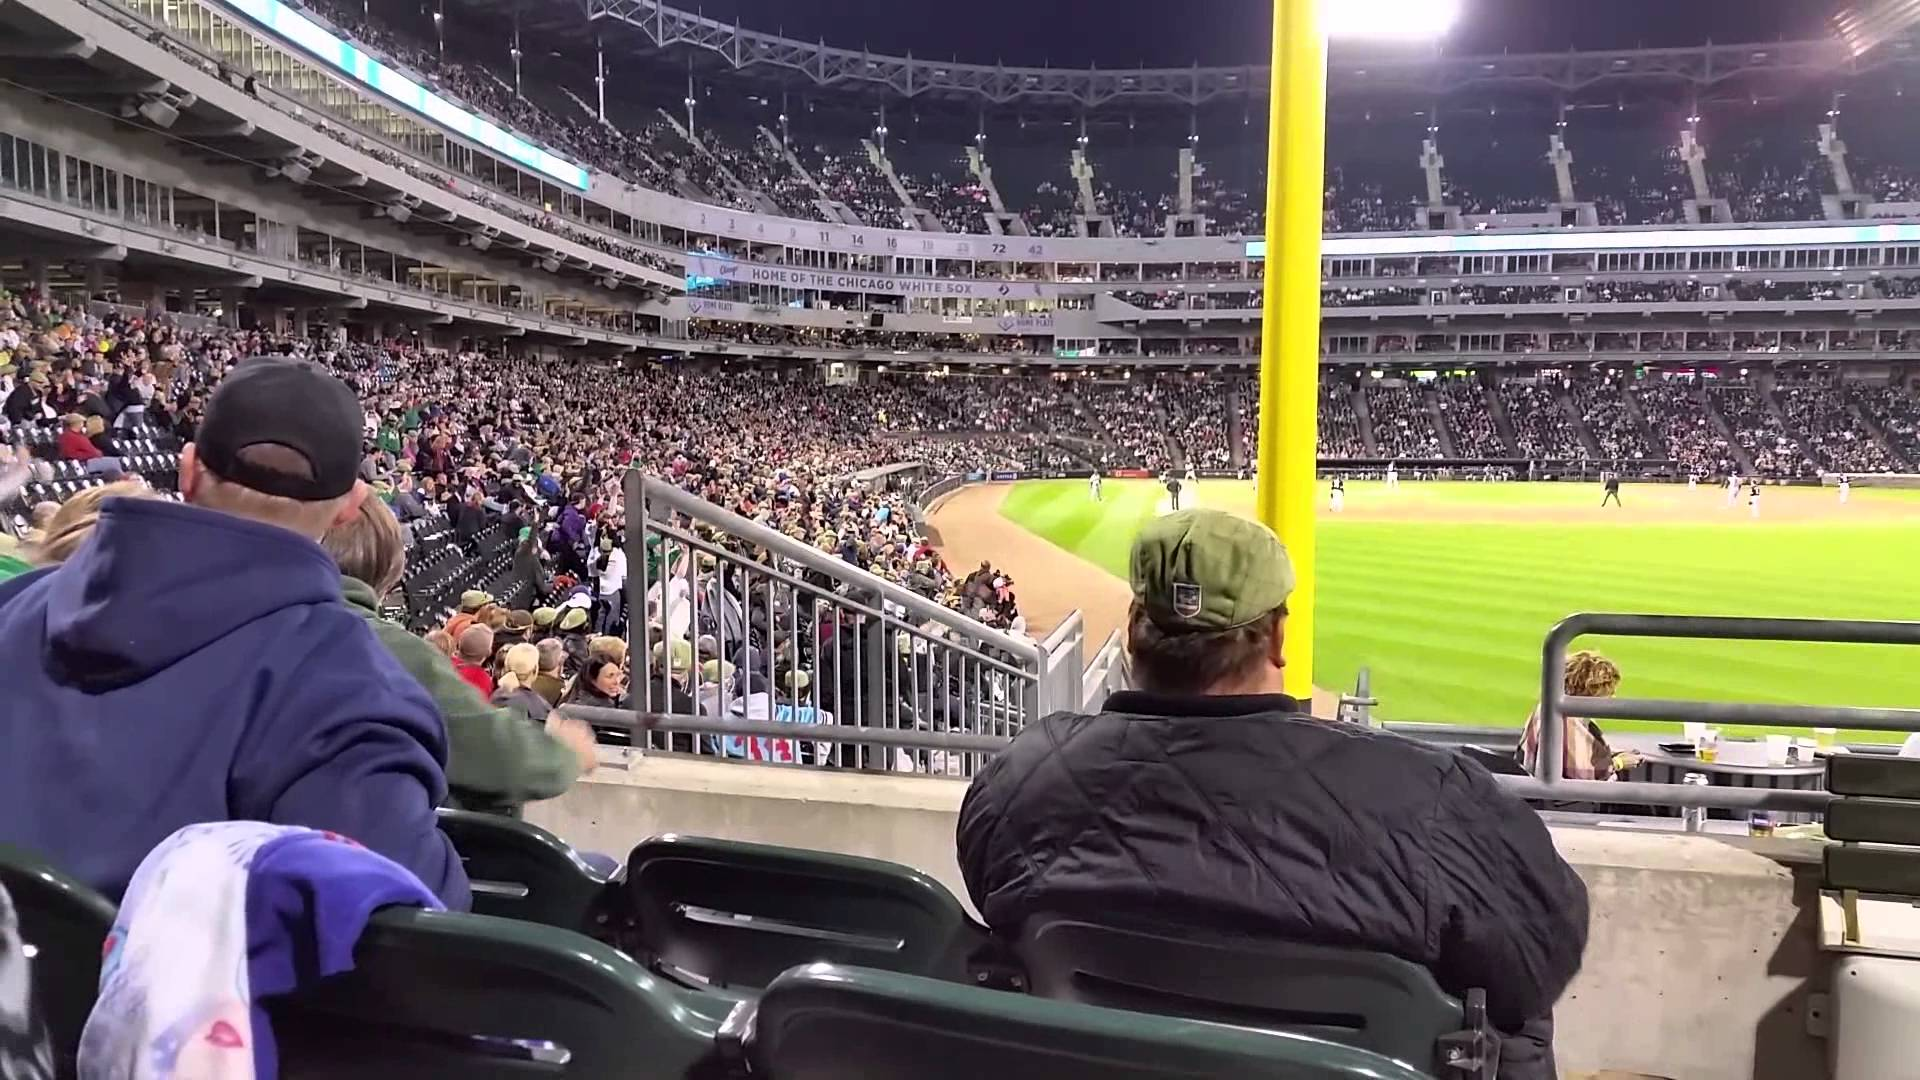 White Sox fan throws up the middle finger when the wave comes around